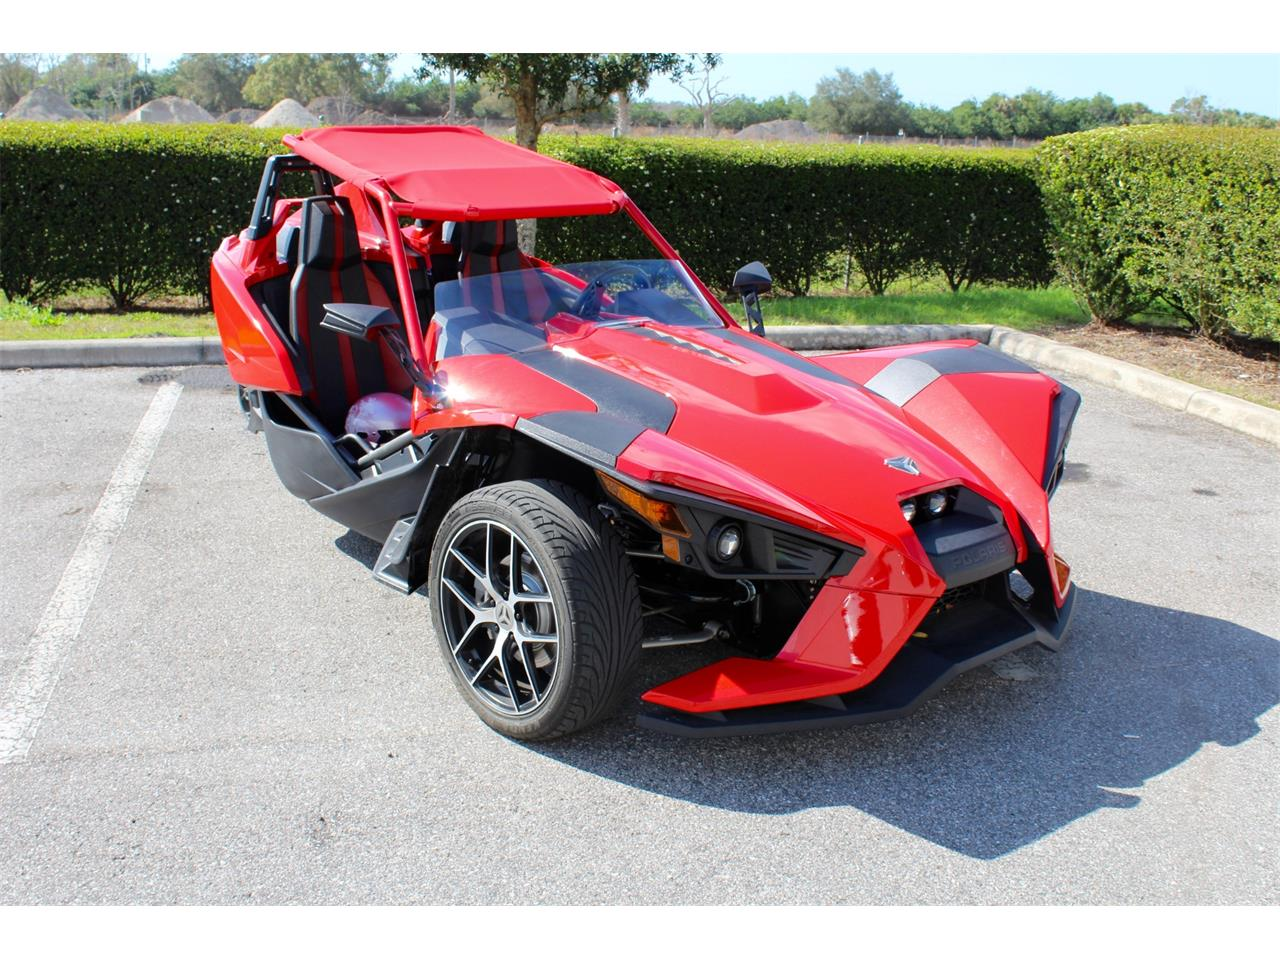 2016 Polaris Slingshot >> 2016 Polaris Slingshot For Sale Classiccars Com Cc 1066984